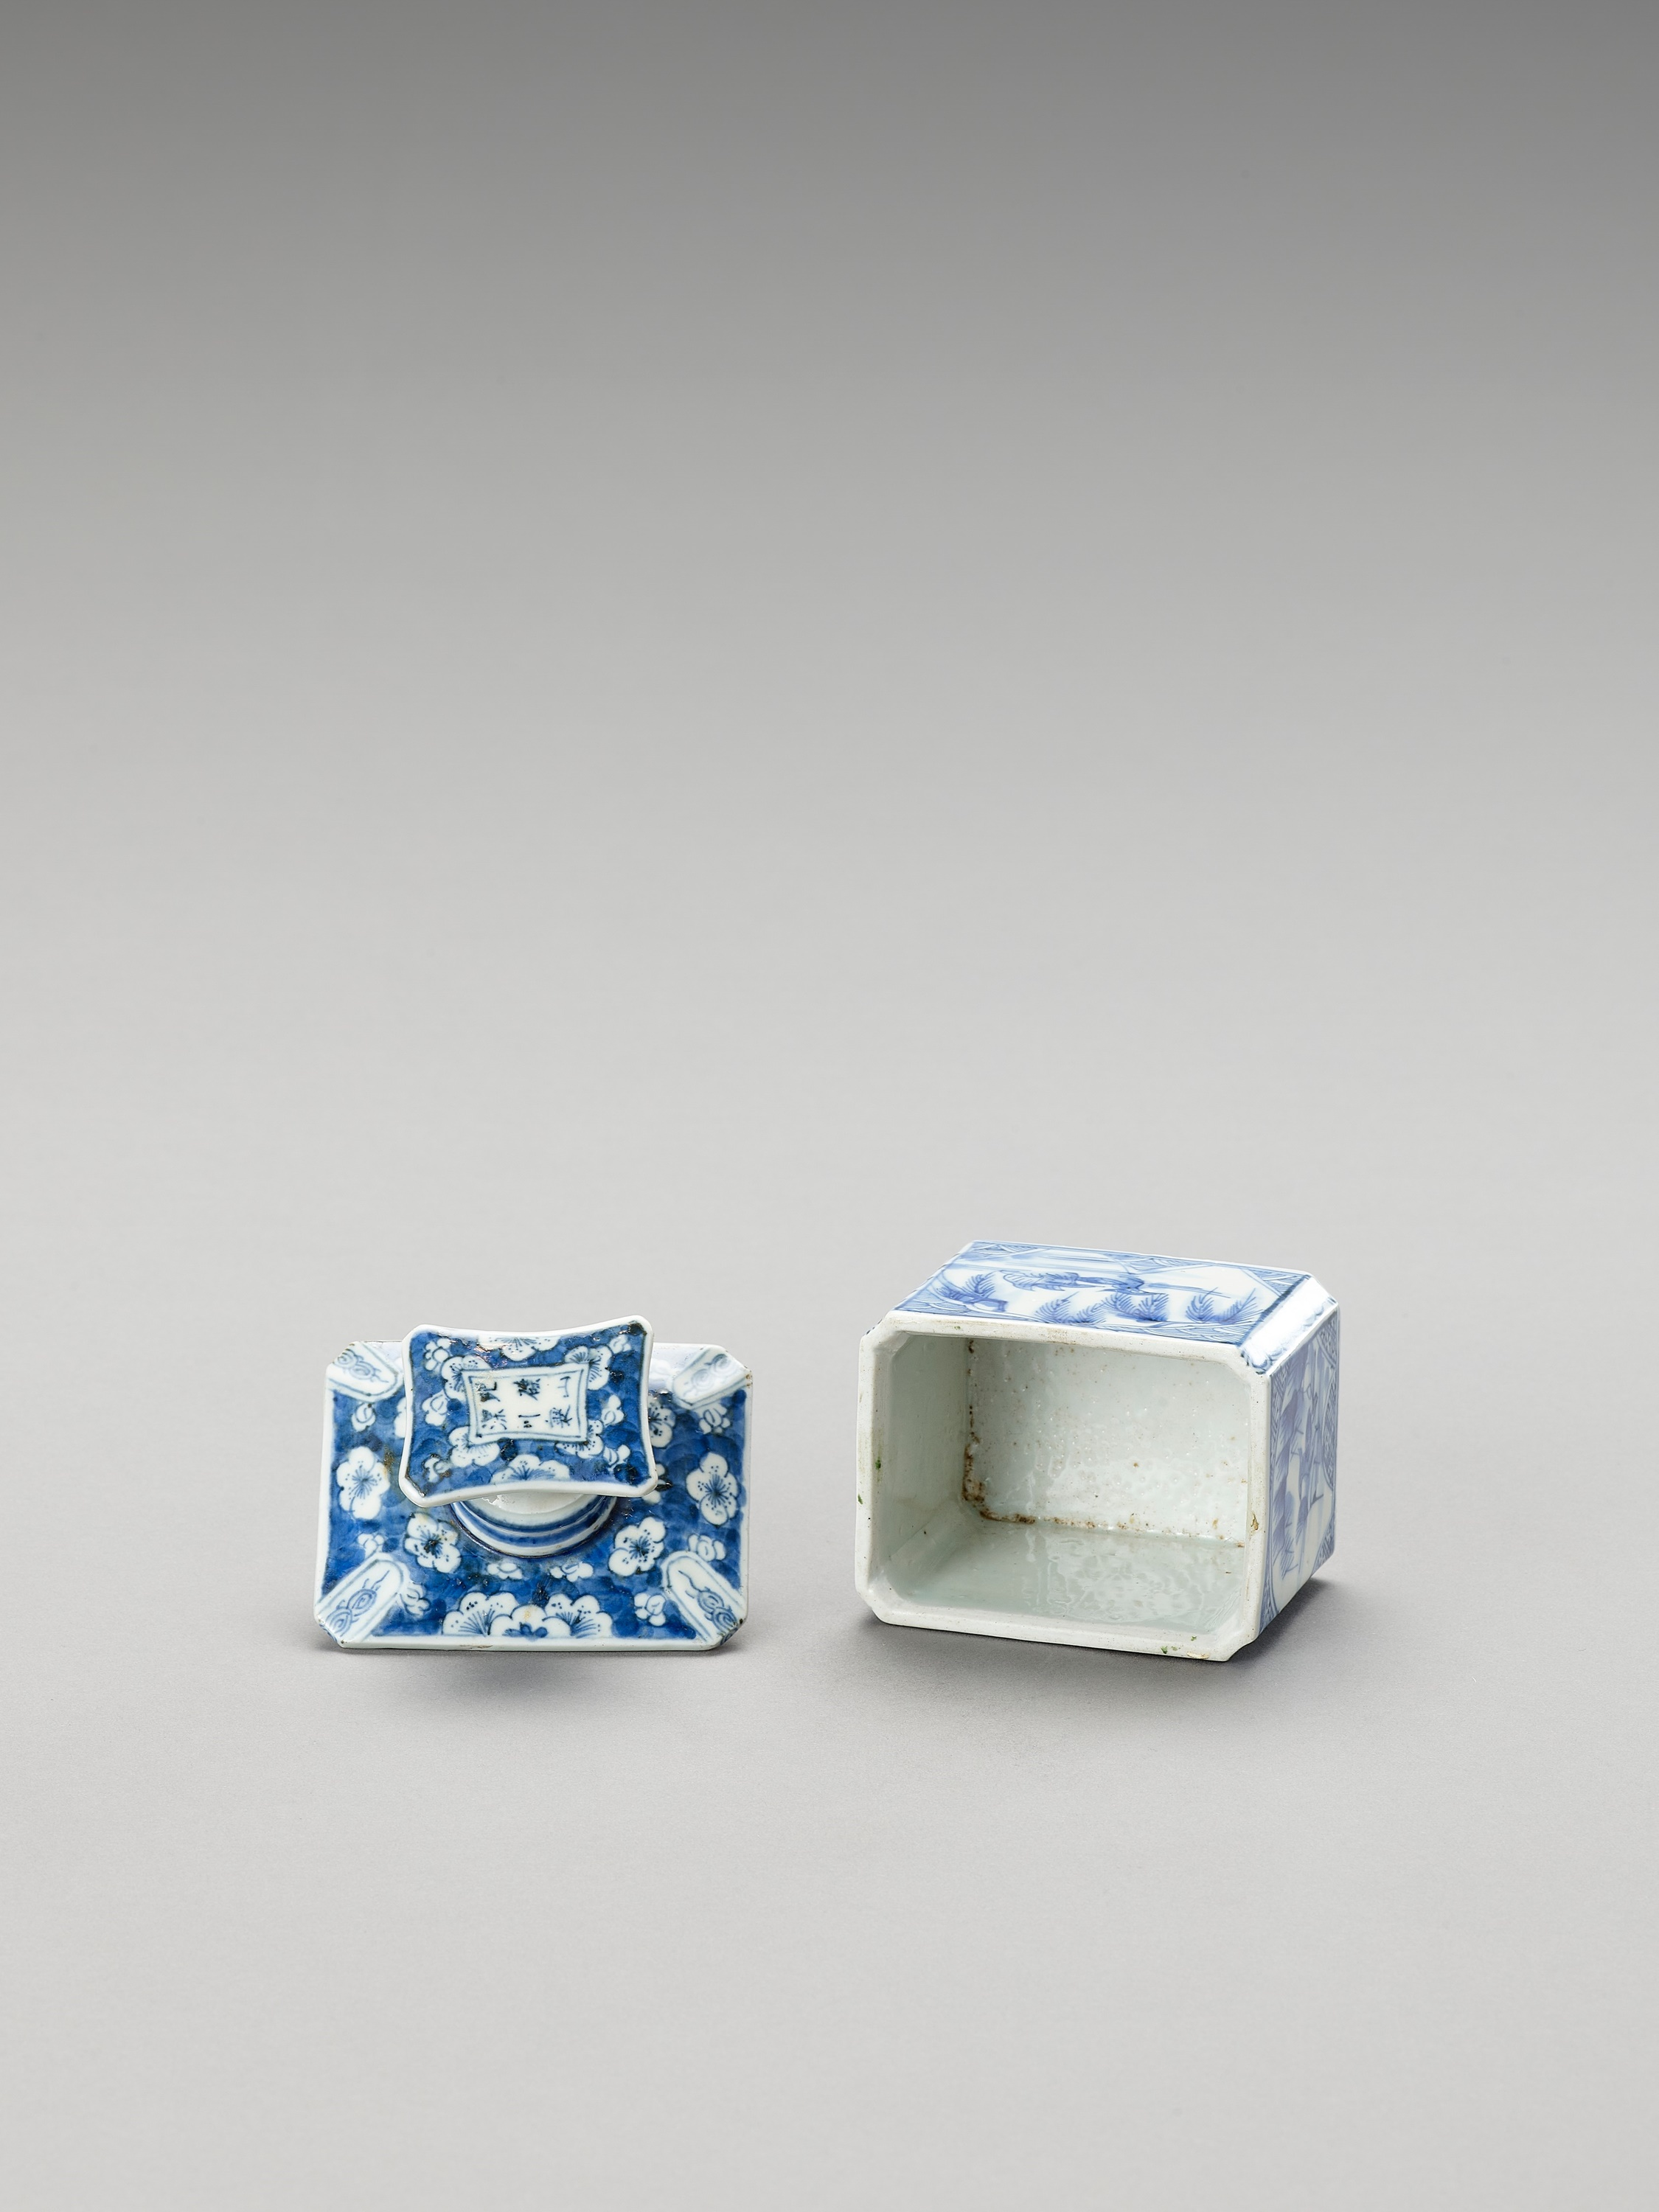 A BLUE AND WHITE FUKAGAWA PORCELAIN TEA CADDY AND COVER - Image 5 of 7